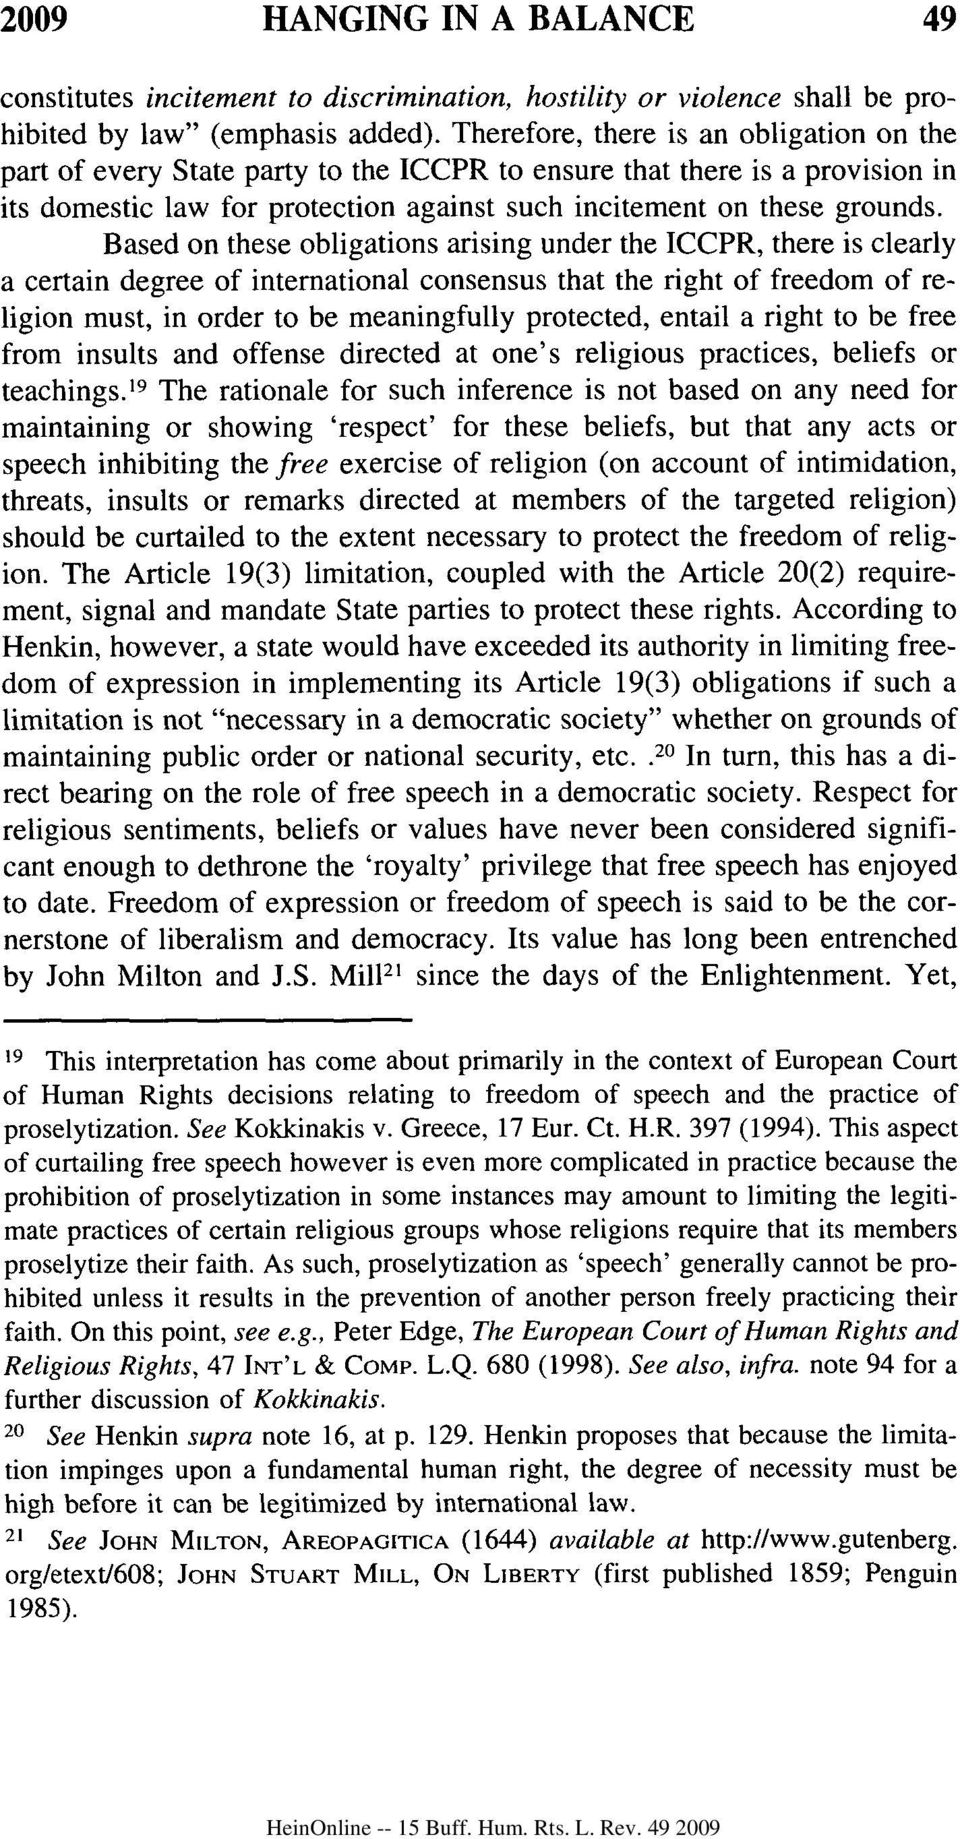 Based on these obligations arising under the ICCPR, there is clearly a certain degree of international consensus that the right of freedom of religion must, in order to be meaningfully protected,